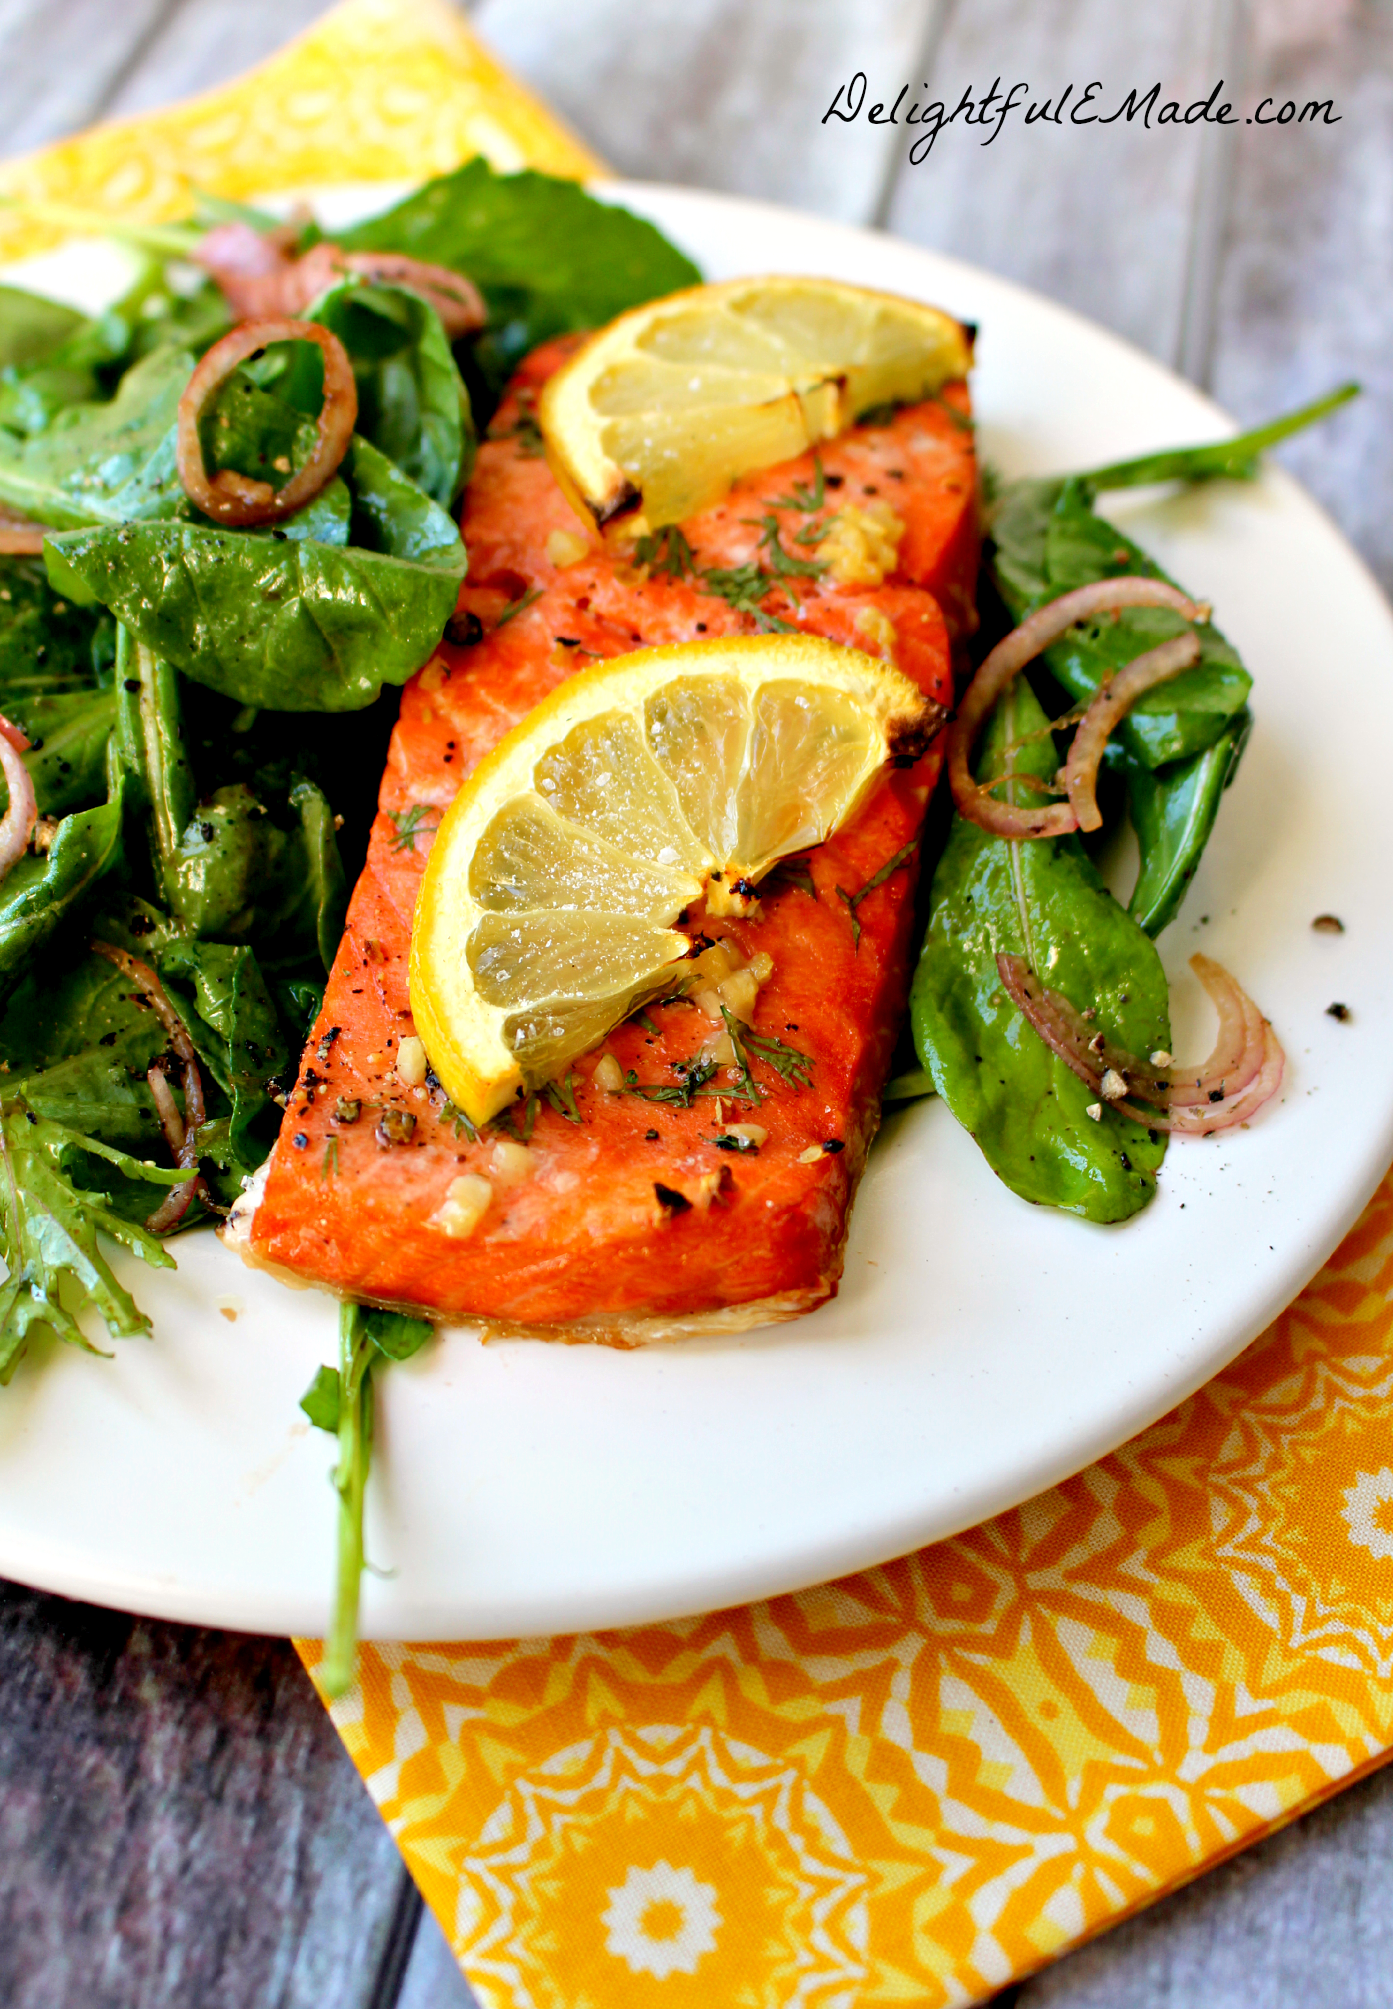 Grilled on a gas or charcoal grill, this salmon is easy, delicious and ...